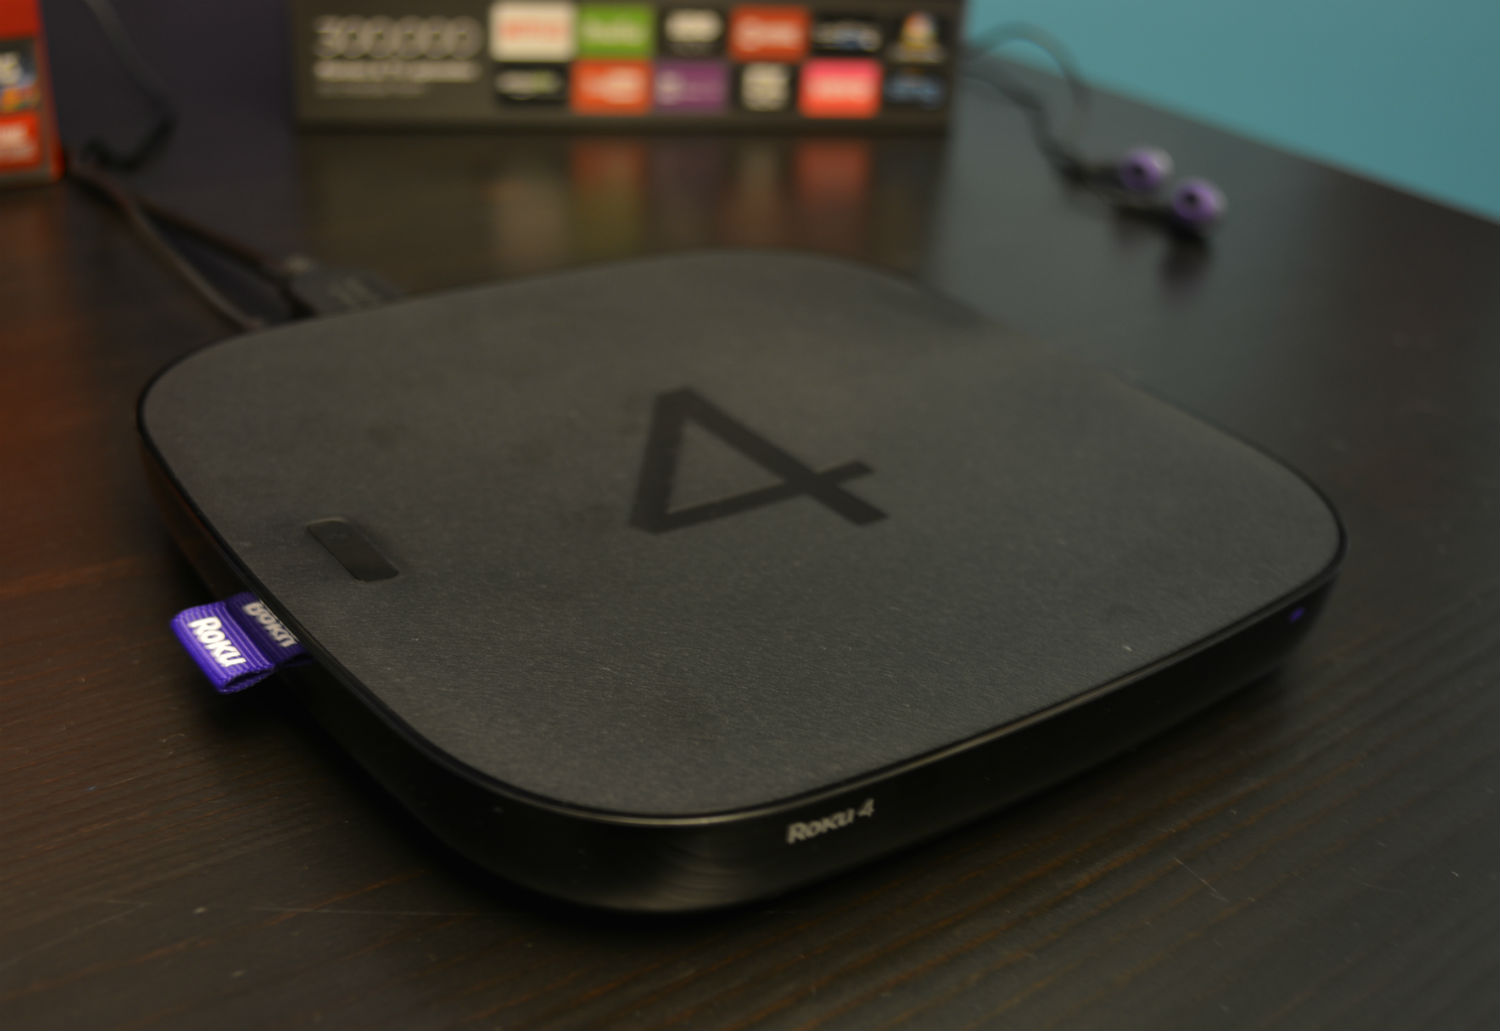 The Roku 4 features a quad-core processor, 802.11ac WiFi, optical audio out and a signal-remote button.